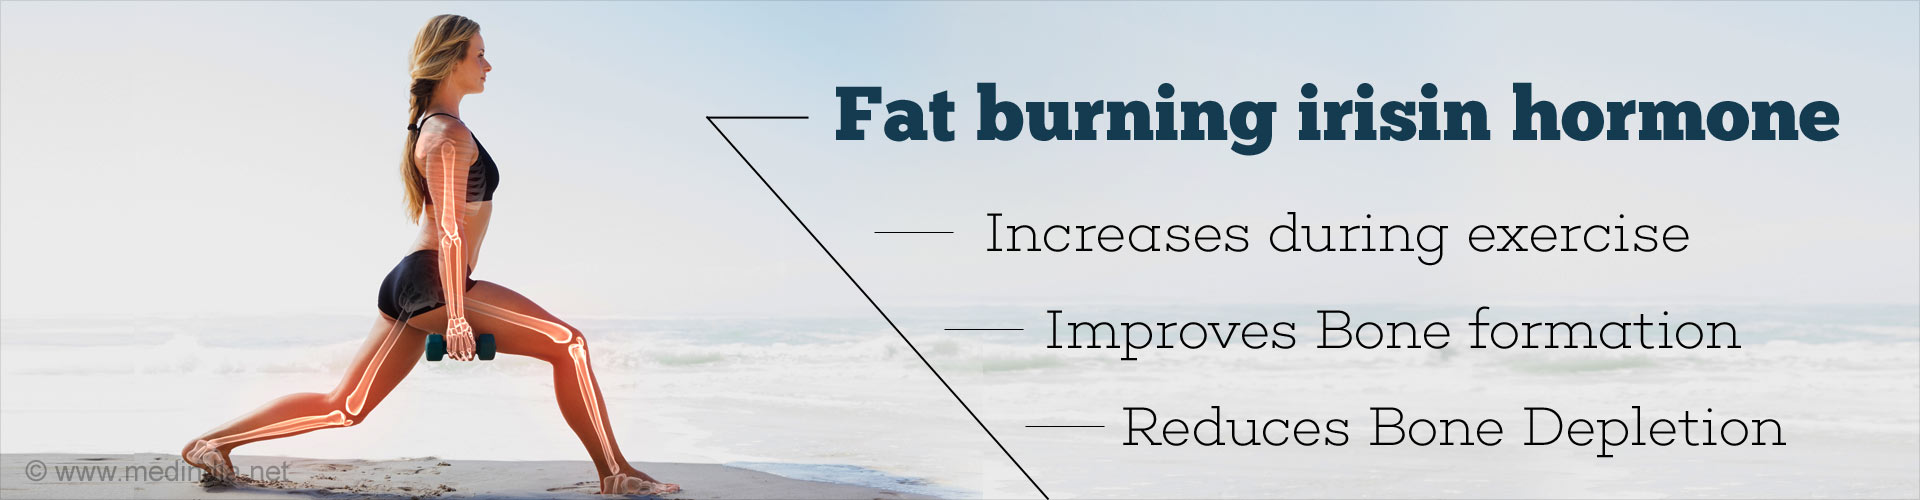 Fat burning irisin hormone